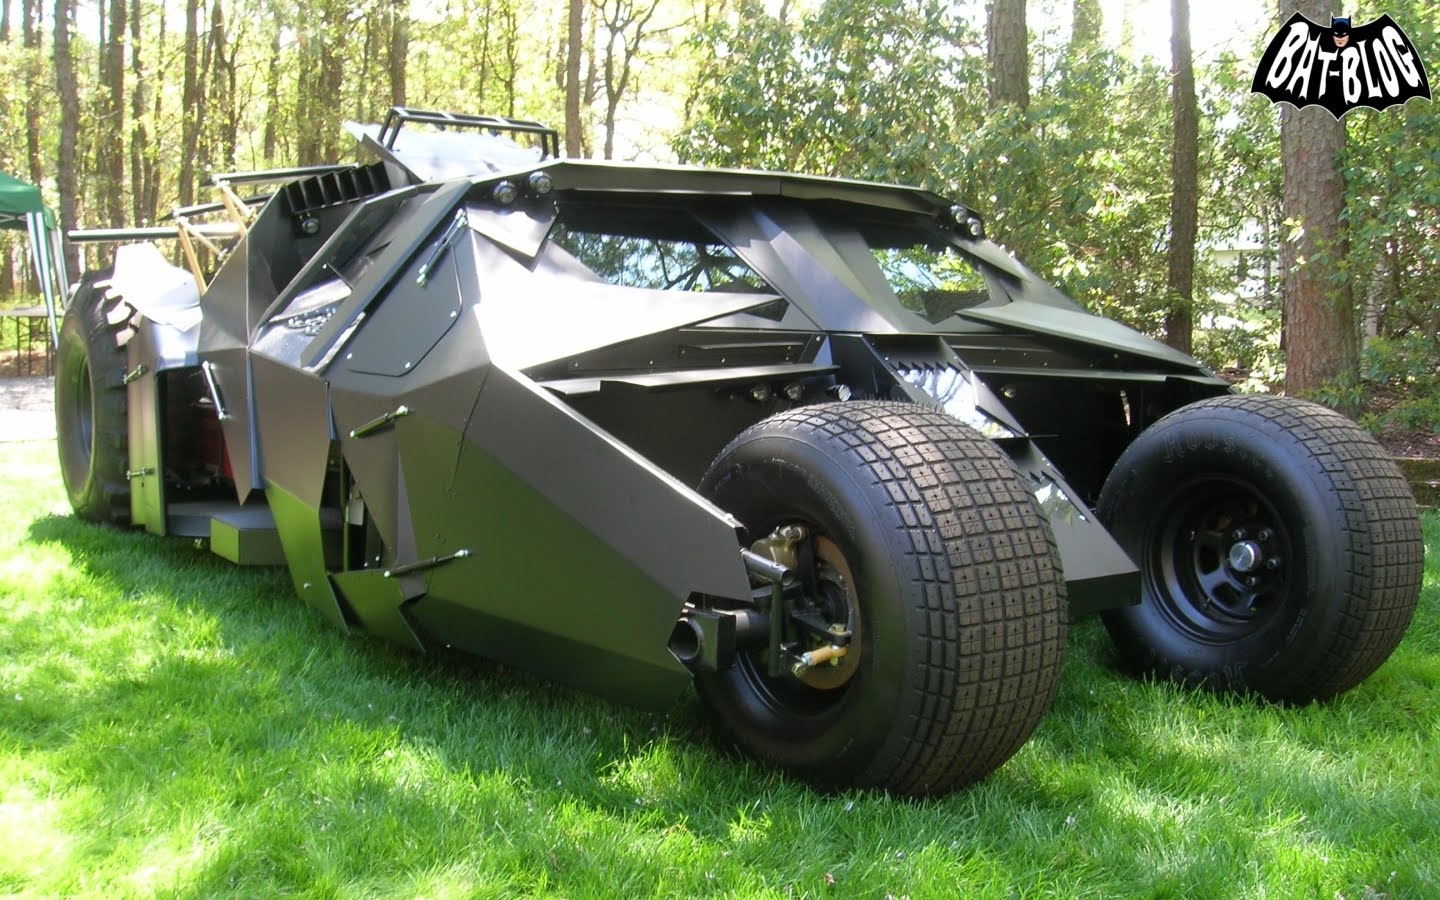 The Tumbler: The Dark Knight's Batmobile